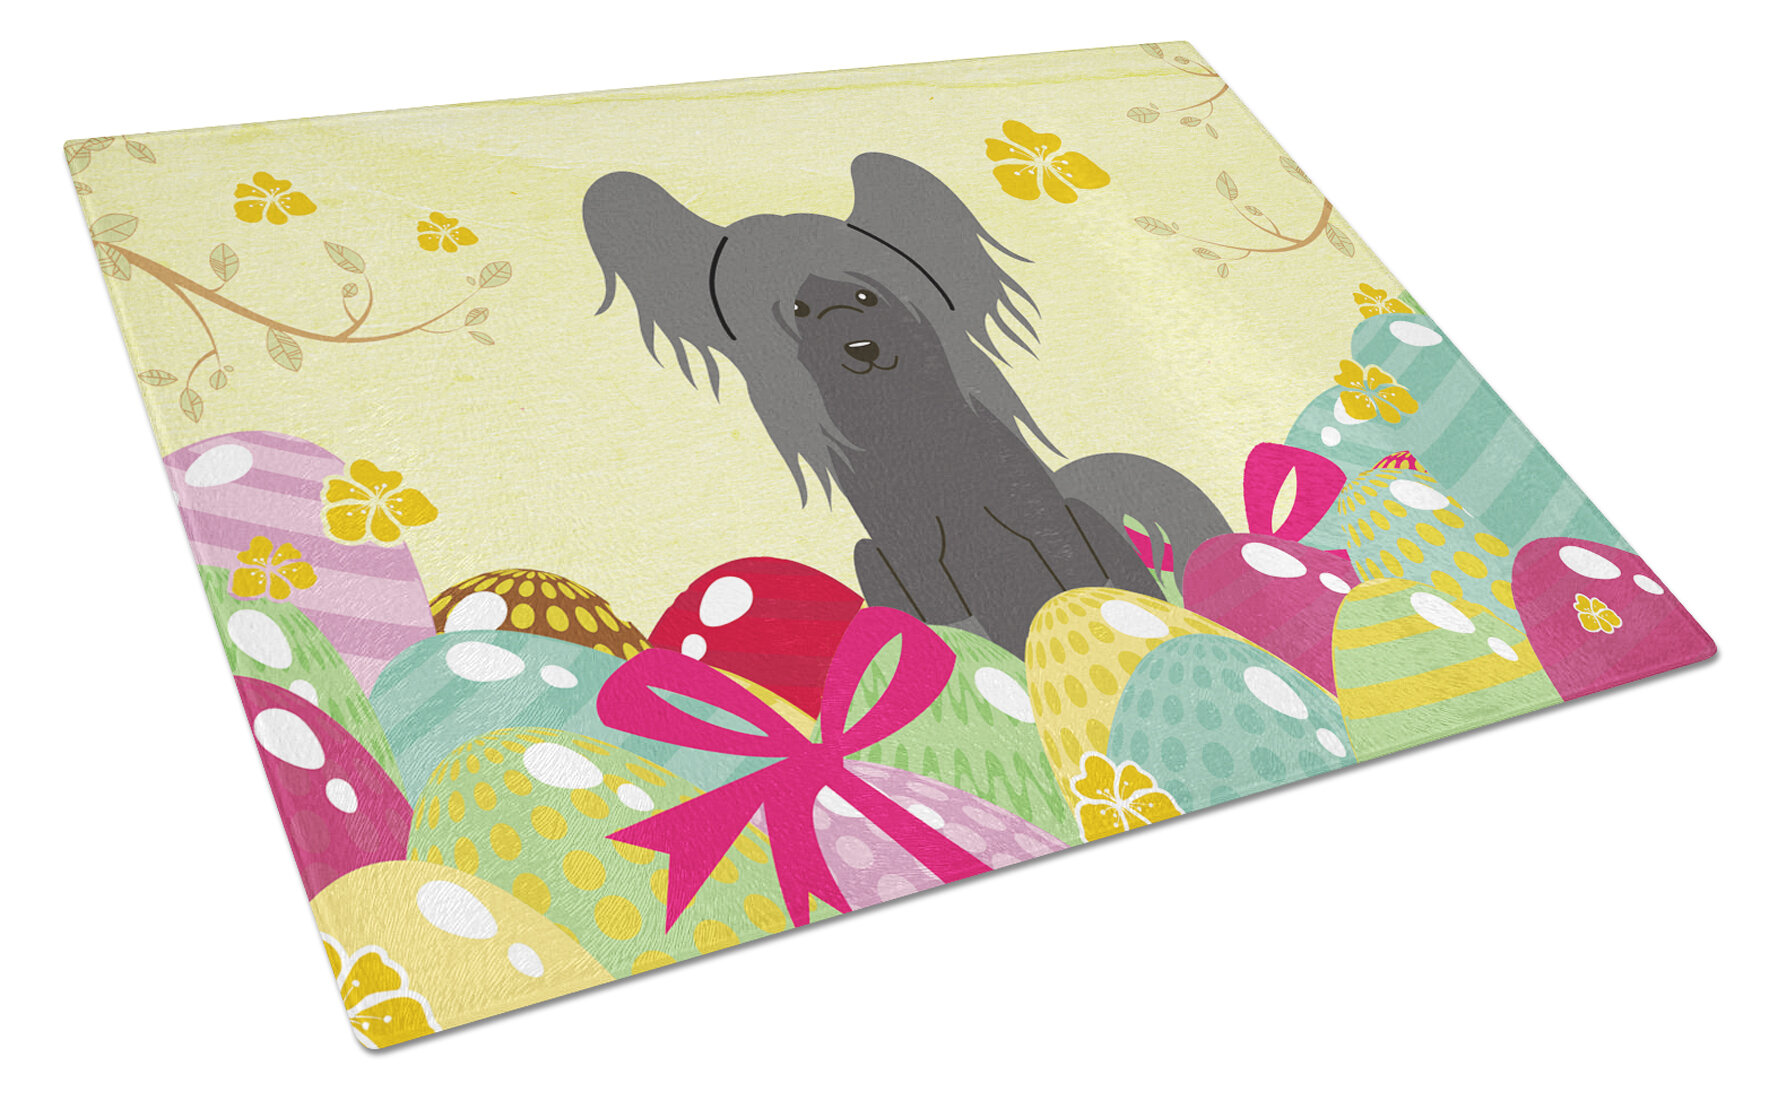 The Holiday Aisle Saroyan Glass Chinese Crested Cutting Board